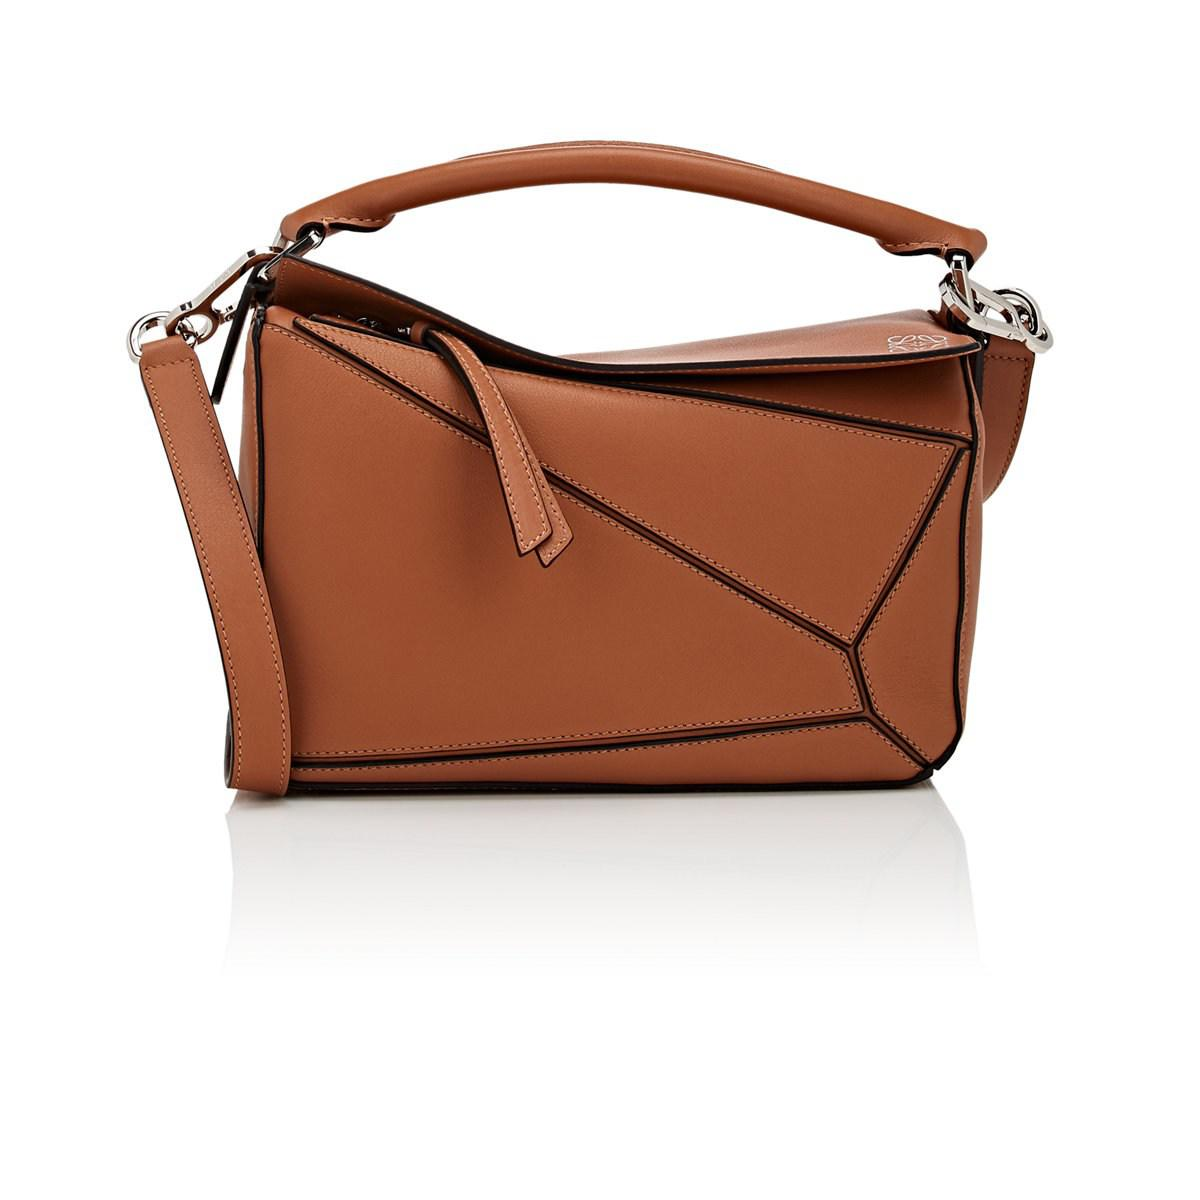 93a4a4a643e8 Loewe Puzzle Small Leather Shoulder Bag in Brown - Lyst